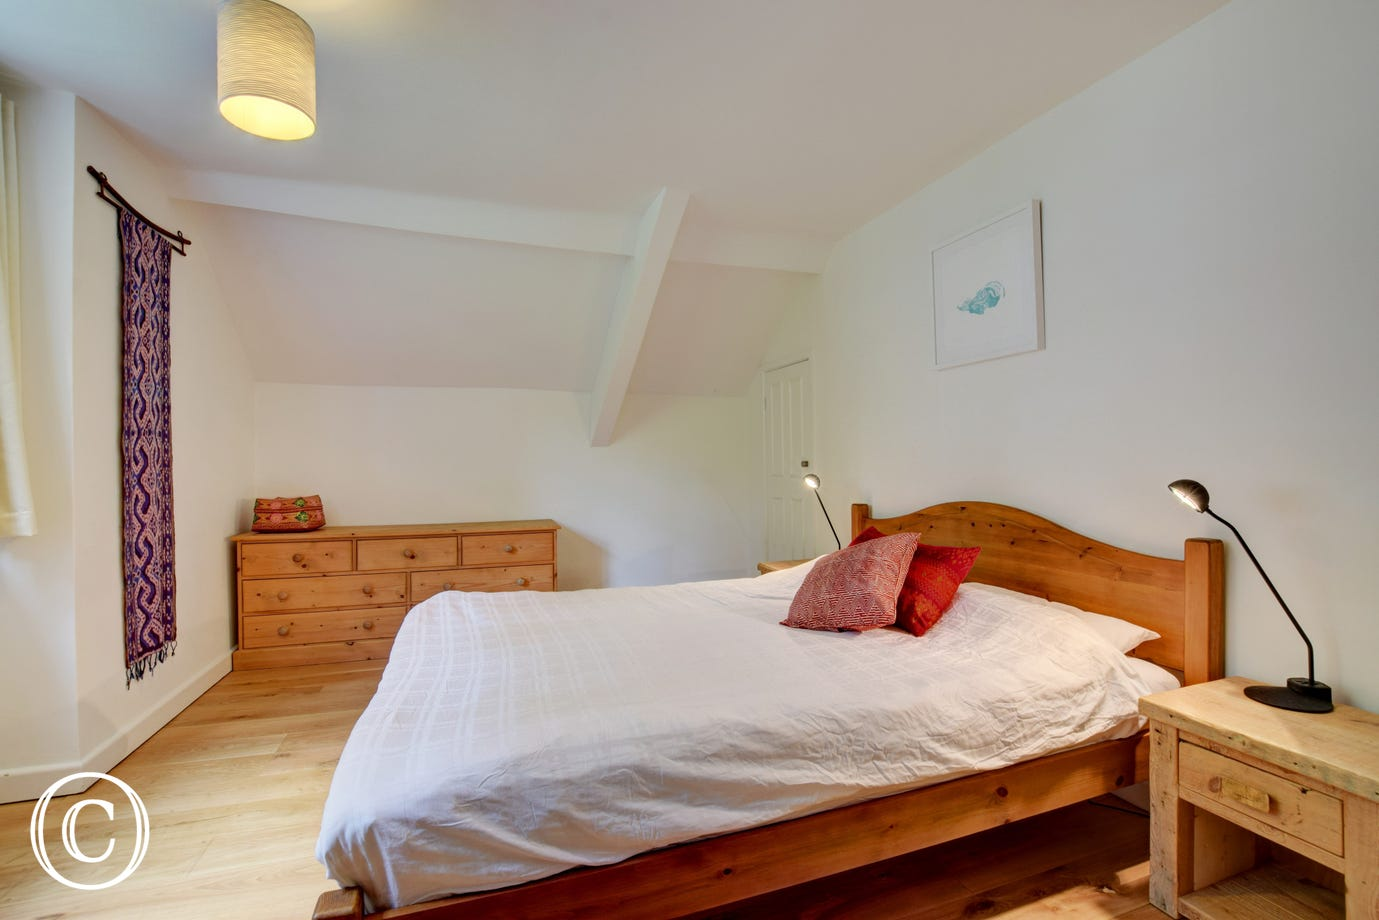 Wild Rose Cottage, Asprington - Bedroom 1